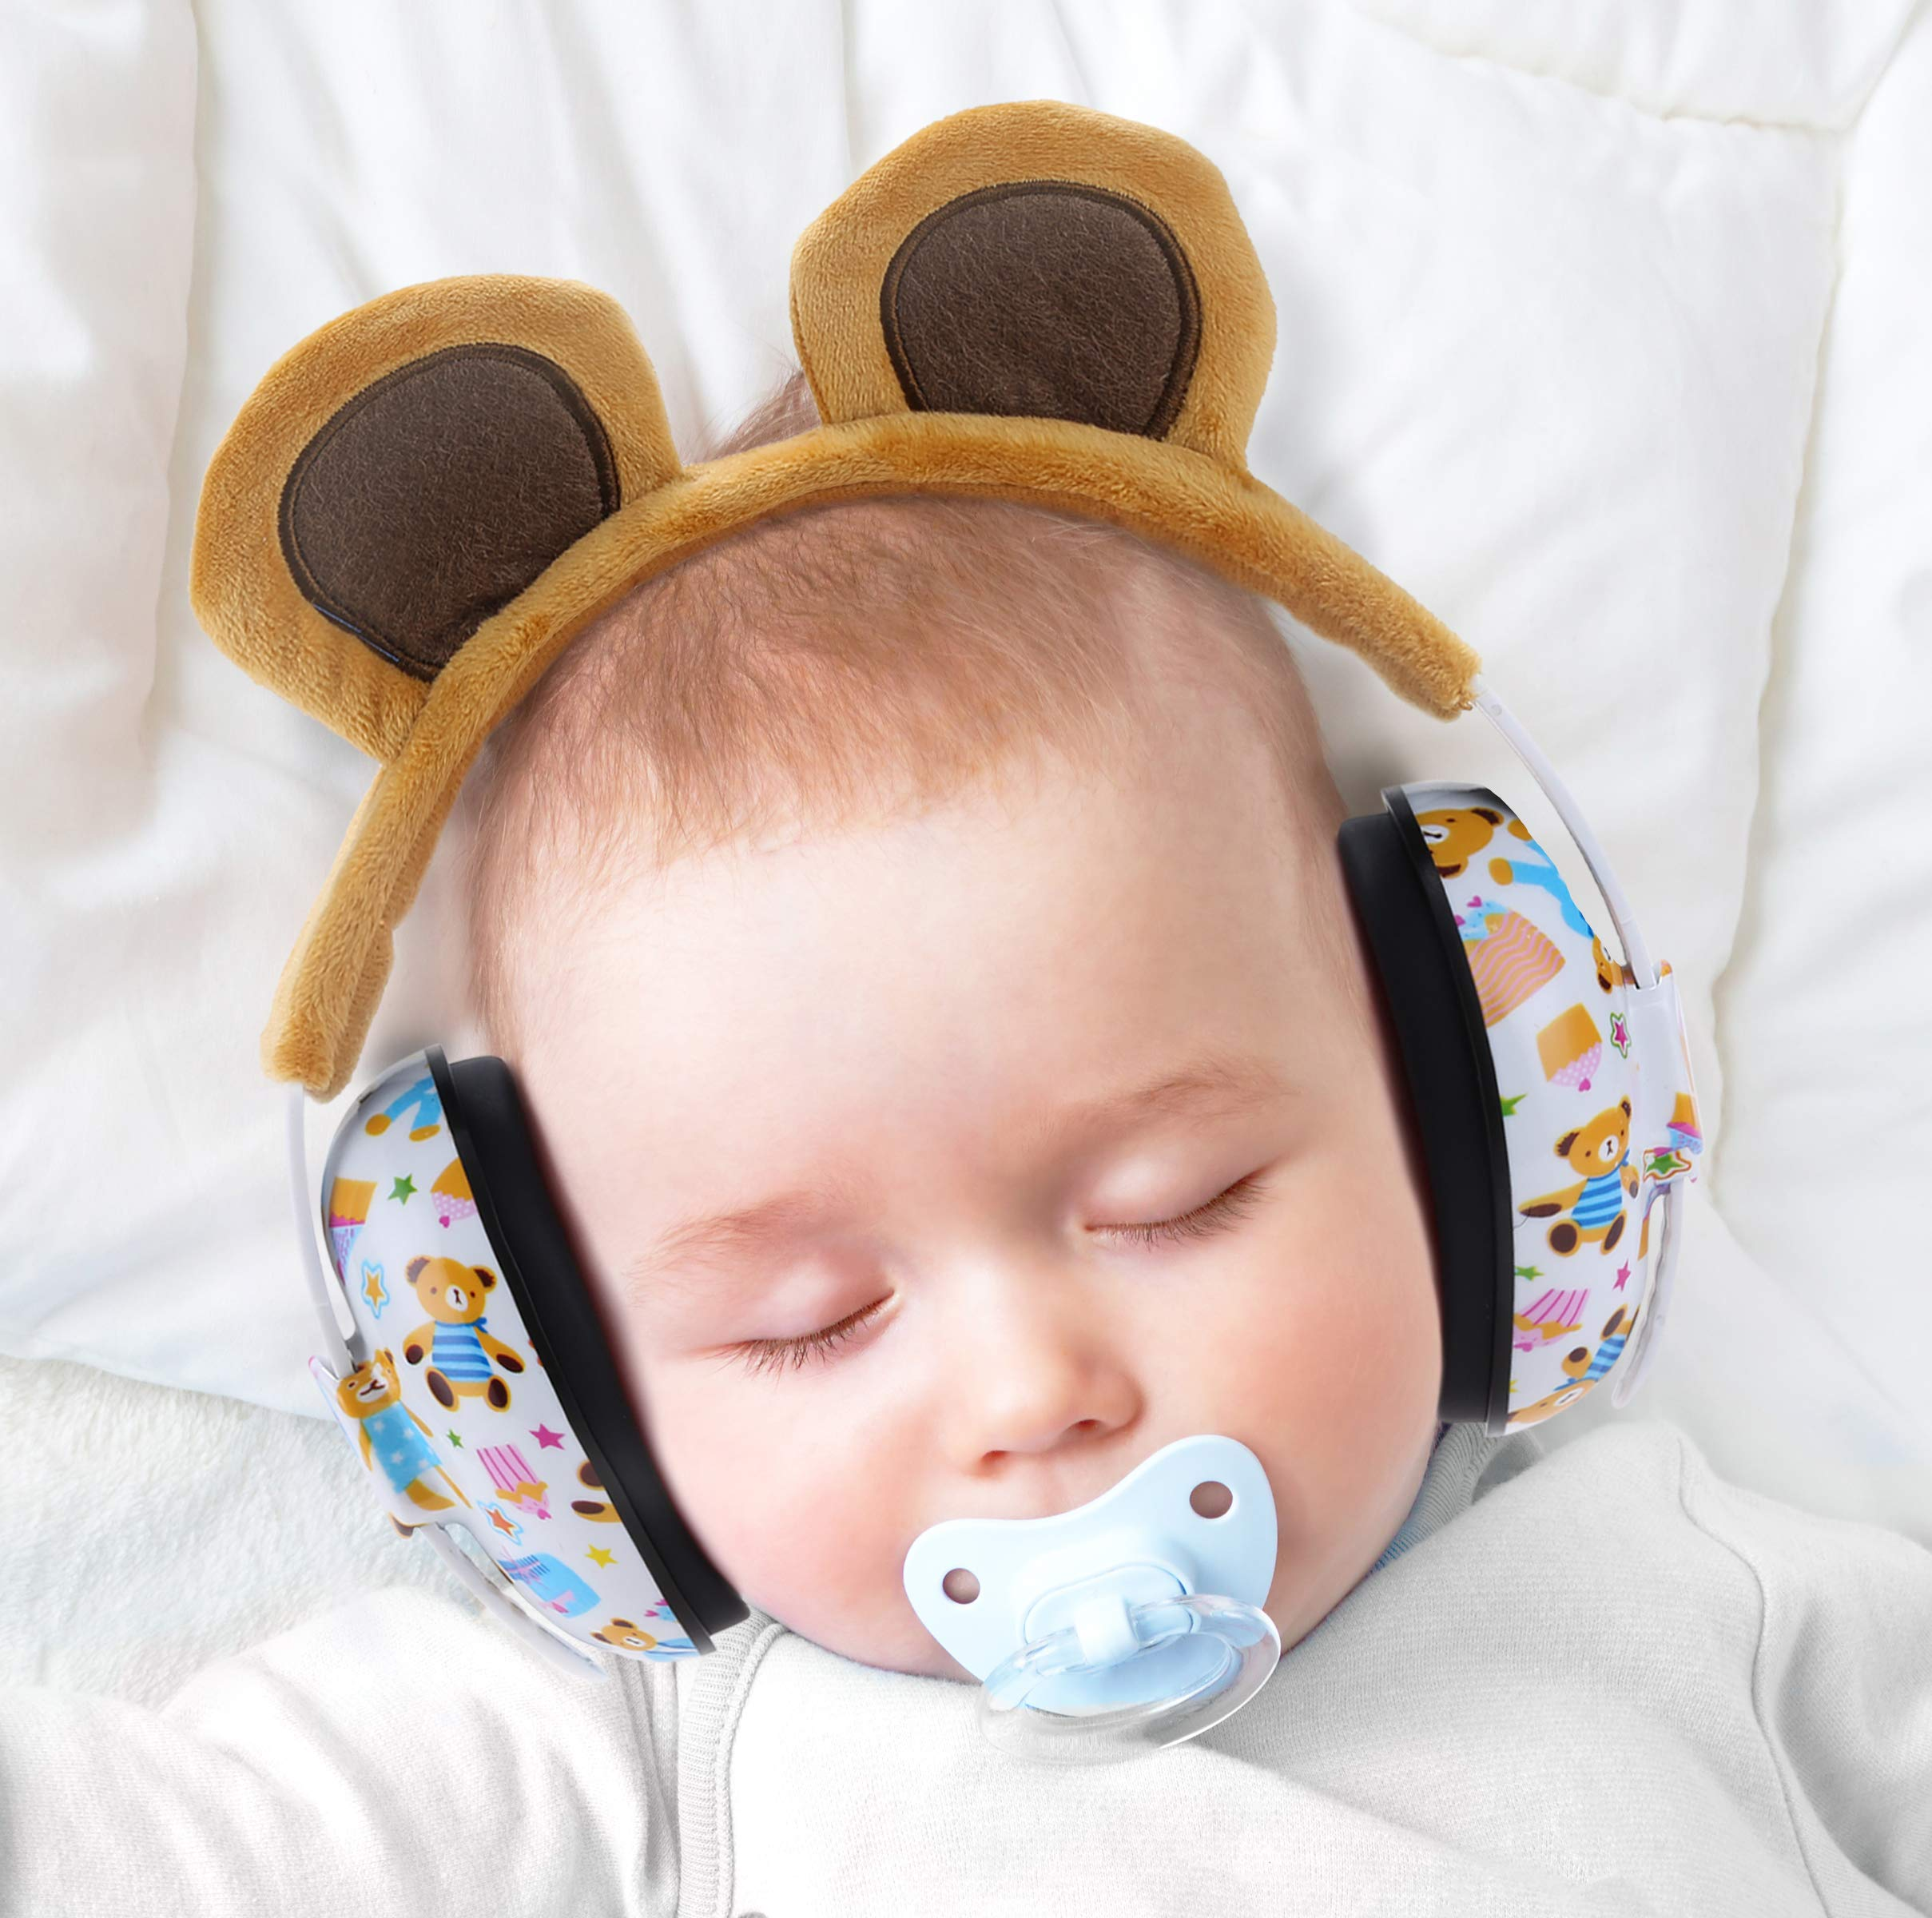 Baby Ear Protection Ear Muffs for 3 Months to 2+ Years Noise Reduction Hearing Protection for Infant and Toddlers with Bear Ear. (Brown)